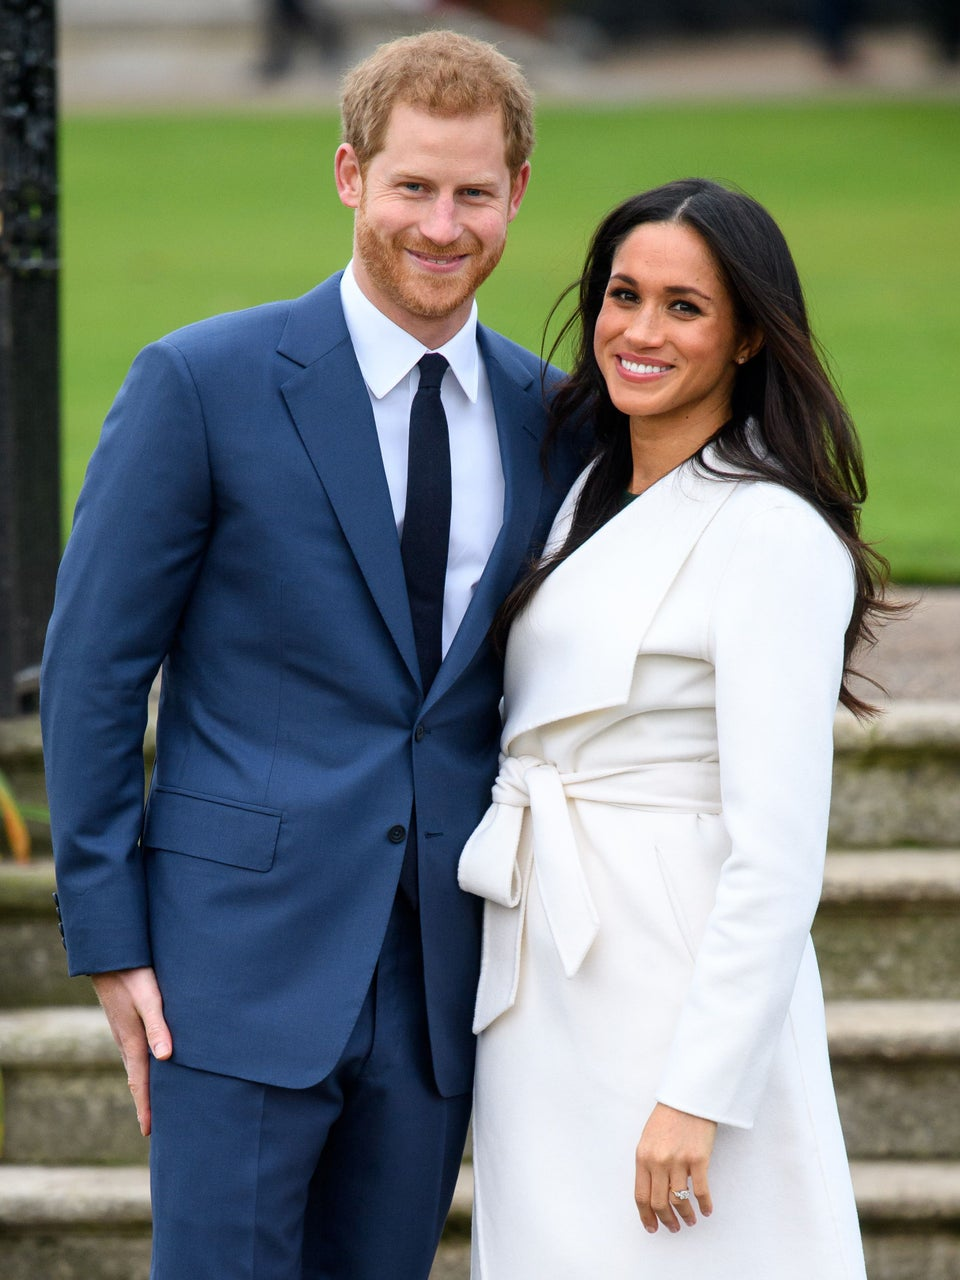 Prince Harry And Meghan Markle Extend Wedding Invite To The Public